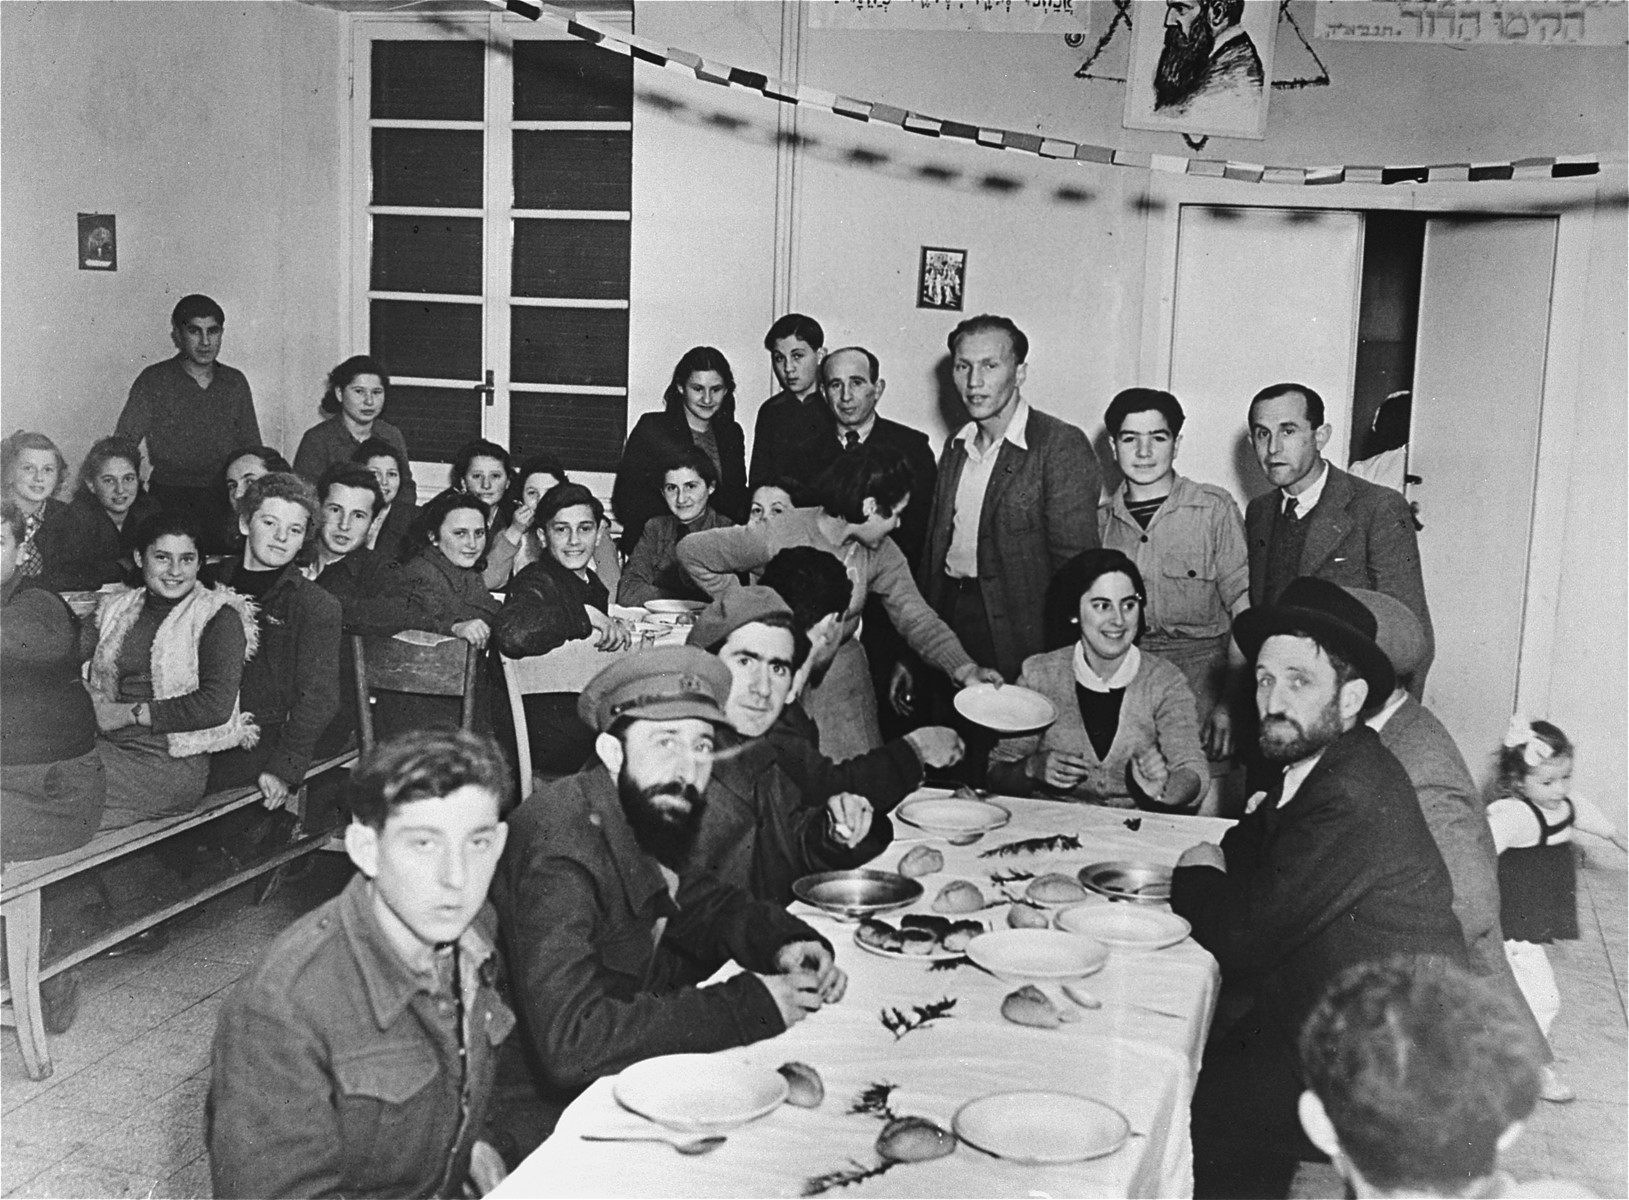 Teenagers and guests enjoy a festive meal at the Youth Aliyah children's home in Selvino, Italy.  Among those pictured are Shlomo Weisbrod, Noga Donat, Jeshayahu Flamholz, Isak Rechtman, Yaakov Meriash, Avraham Hassman, Helenka Saban, Lea Shnee, Miriam Weinstock, Yaffa Yanover, Edzia Winkler, Halina Liebeskind, Dora Rot, Yaakov Kopelman, Zvi Kaner, Zipora (Baranek) Friedman, Serka Fiederer.